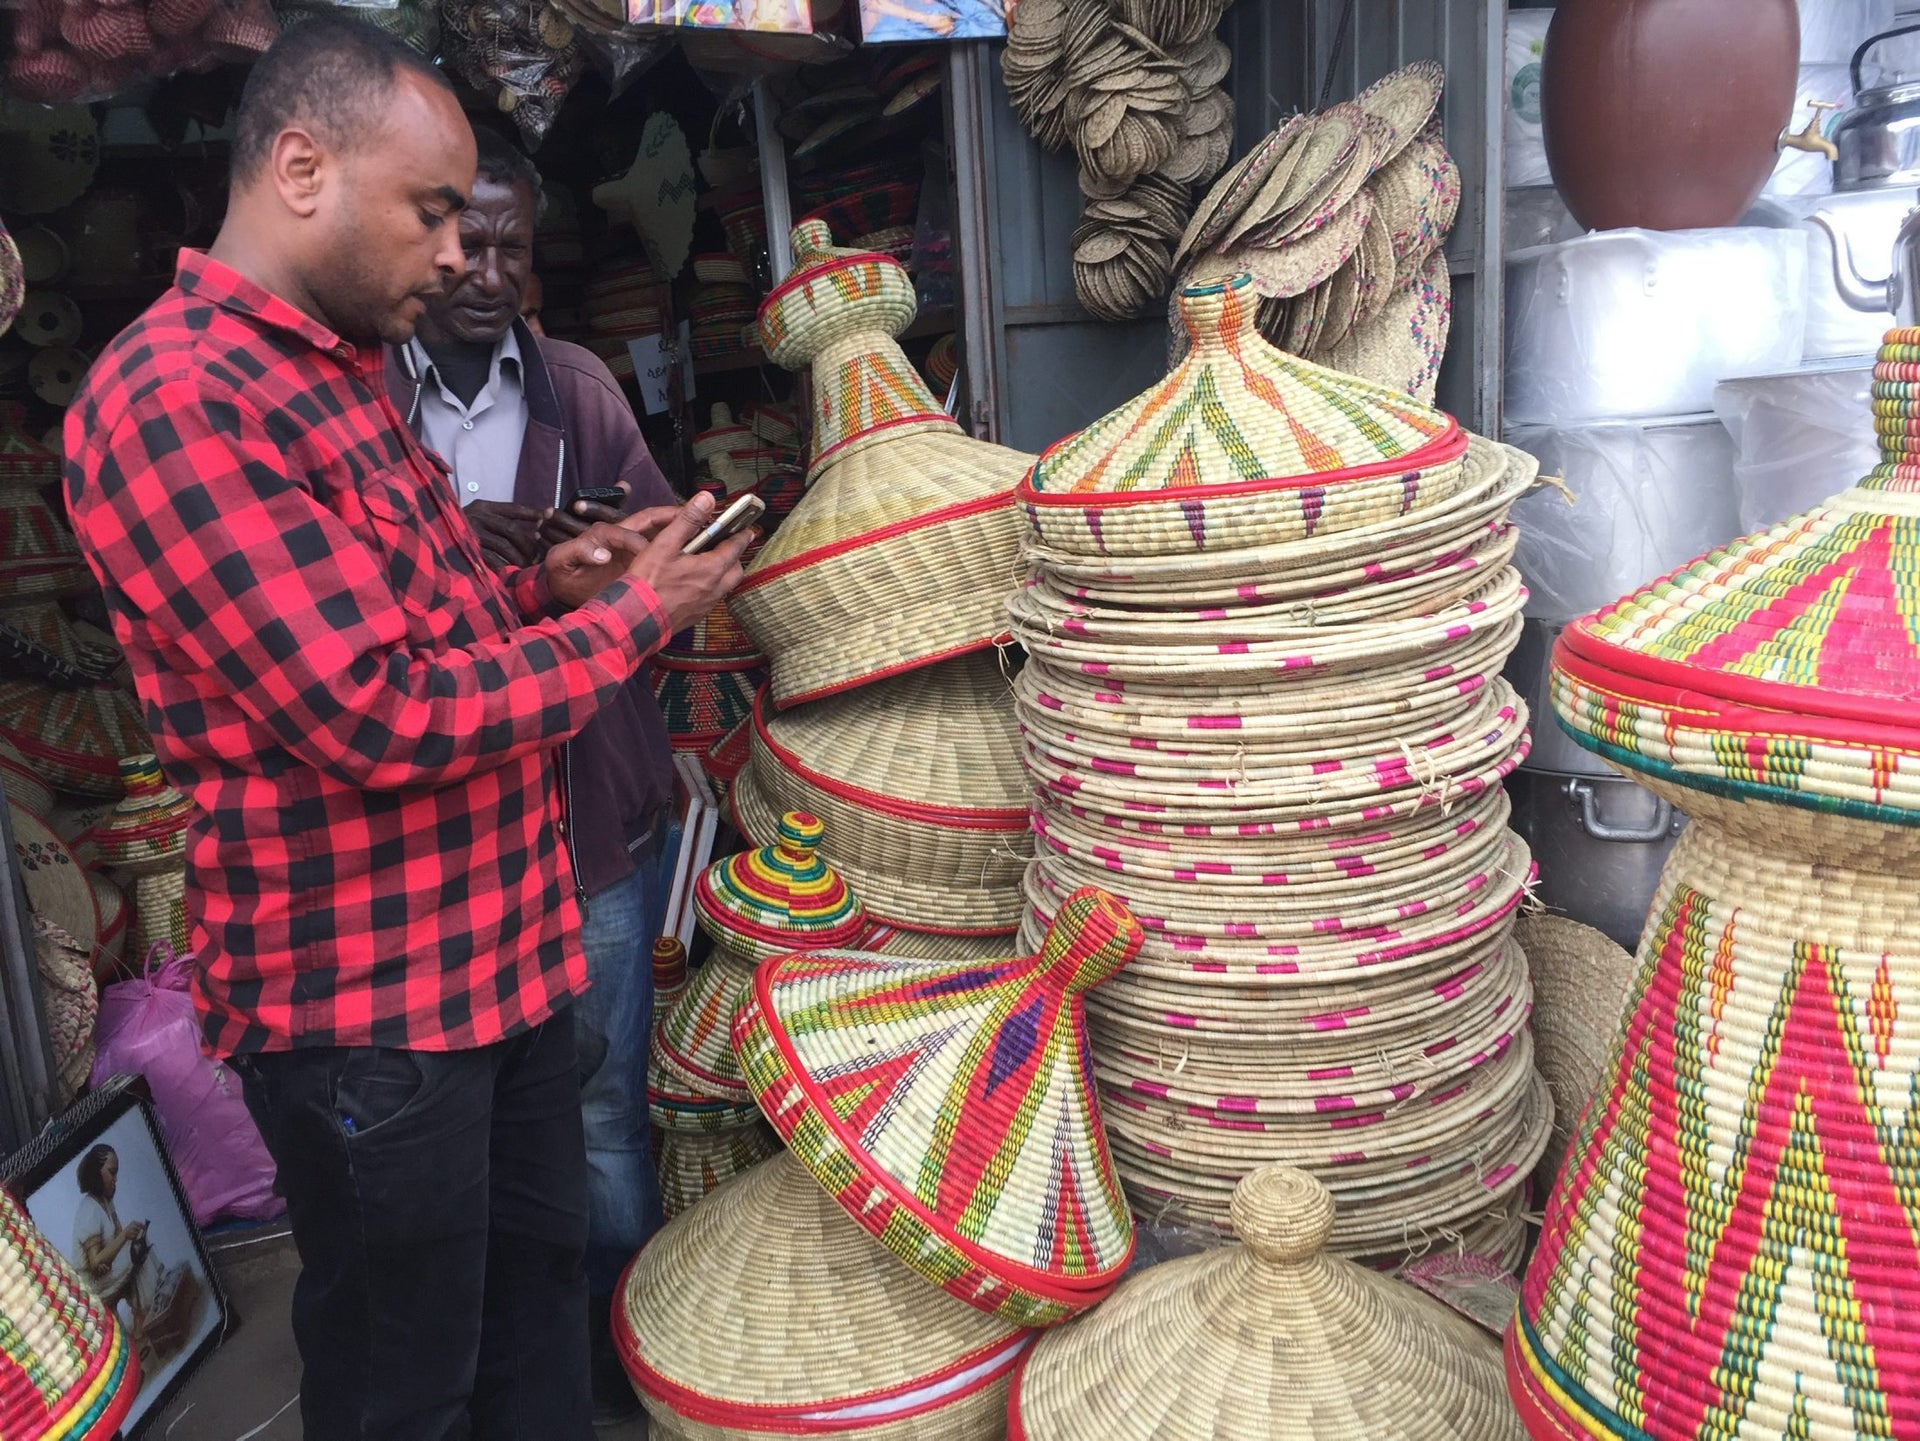 This Oct. 10, 2017 photo shows a colorful display of wares at the main market of Addis Ababa, capital of Ethiopia. The market is called the Merkato, a word borrowed from Italian and one of the few vestiges of Italy's short-lived colonization of Ethiopia in the 1930s. Another Italian invasion, in 1896, was repelled.